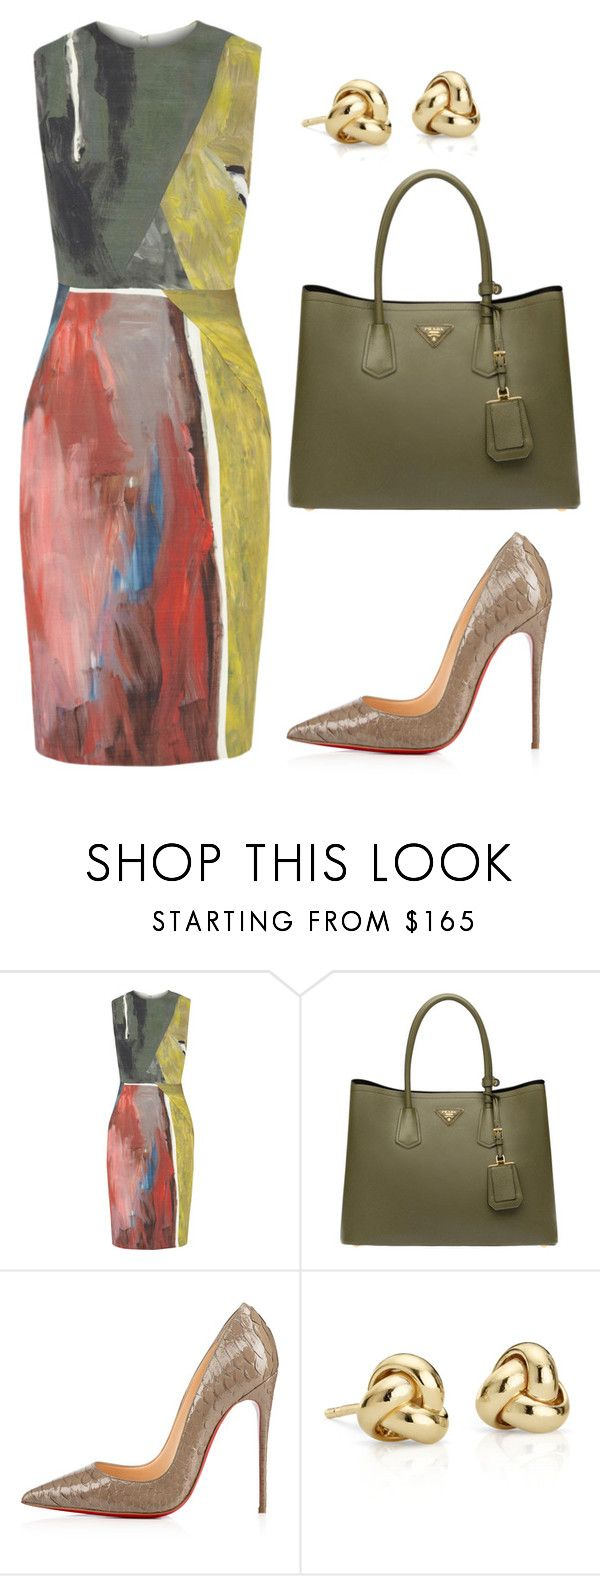 """""""style theory by Helia"""" by heliaamado ❤ liked on Polyvore featuring Cédric Charlier, Prada and Blue Nile"""